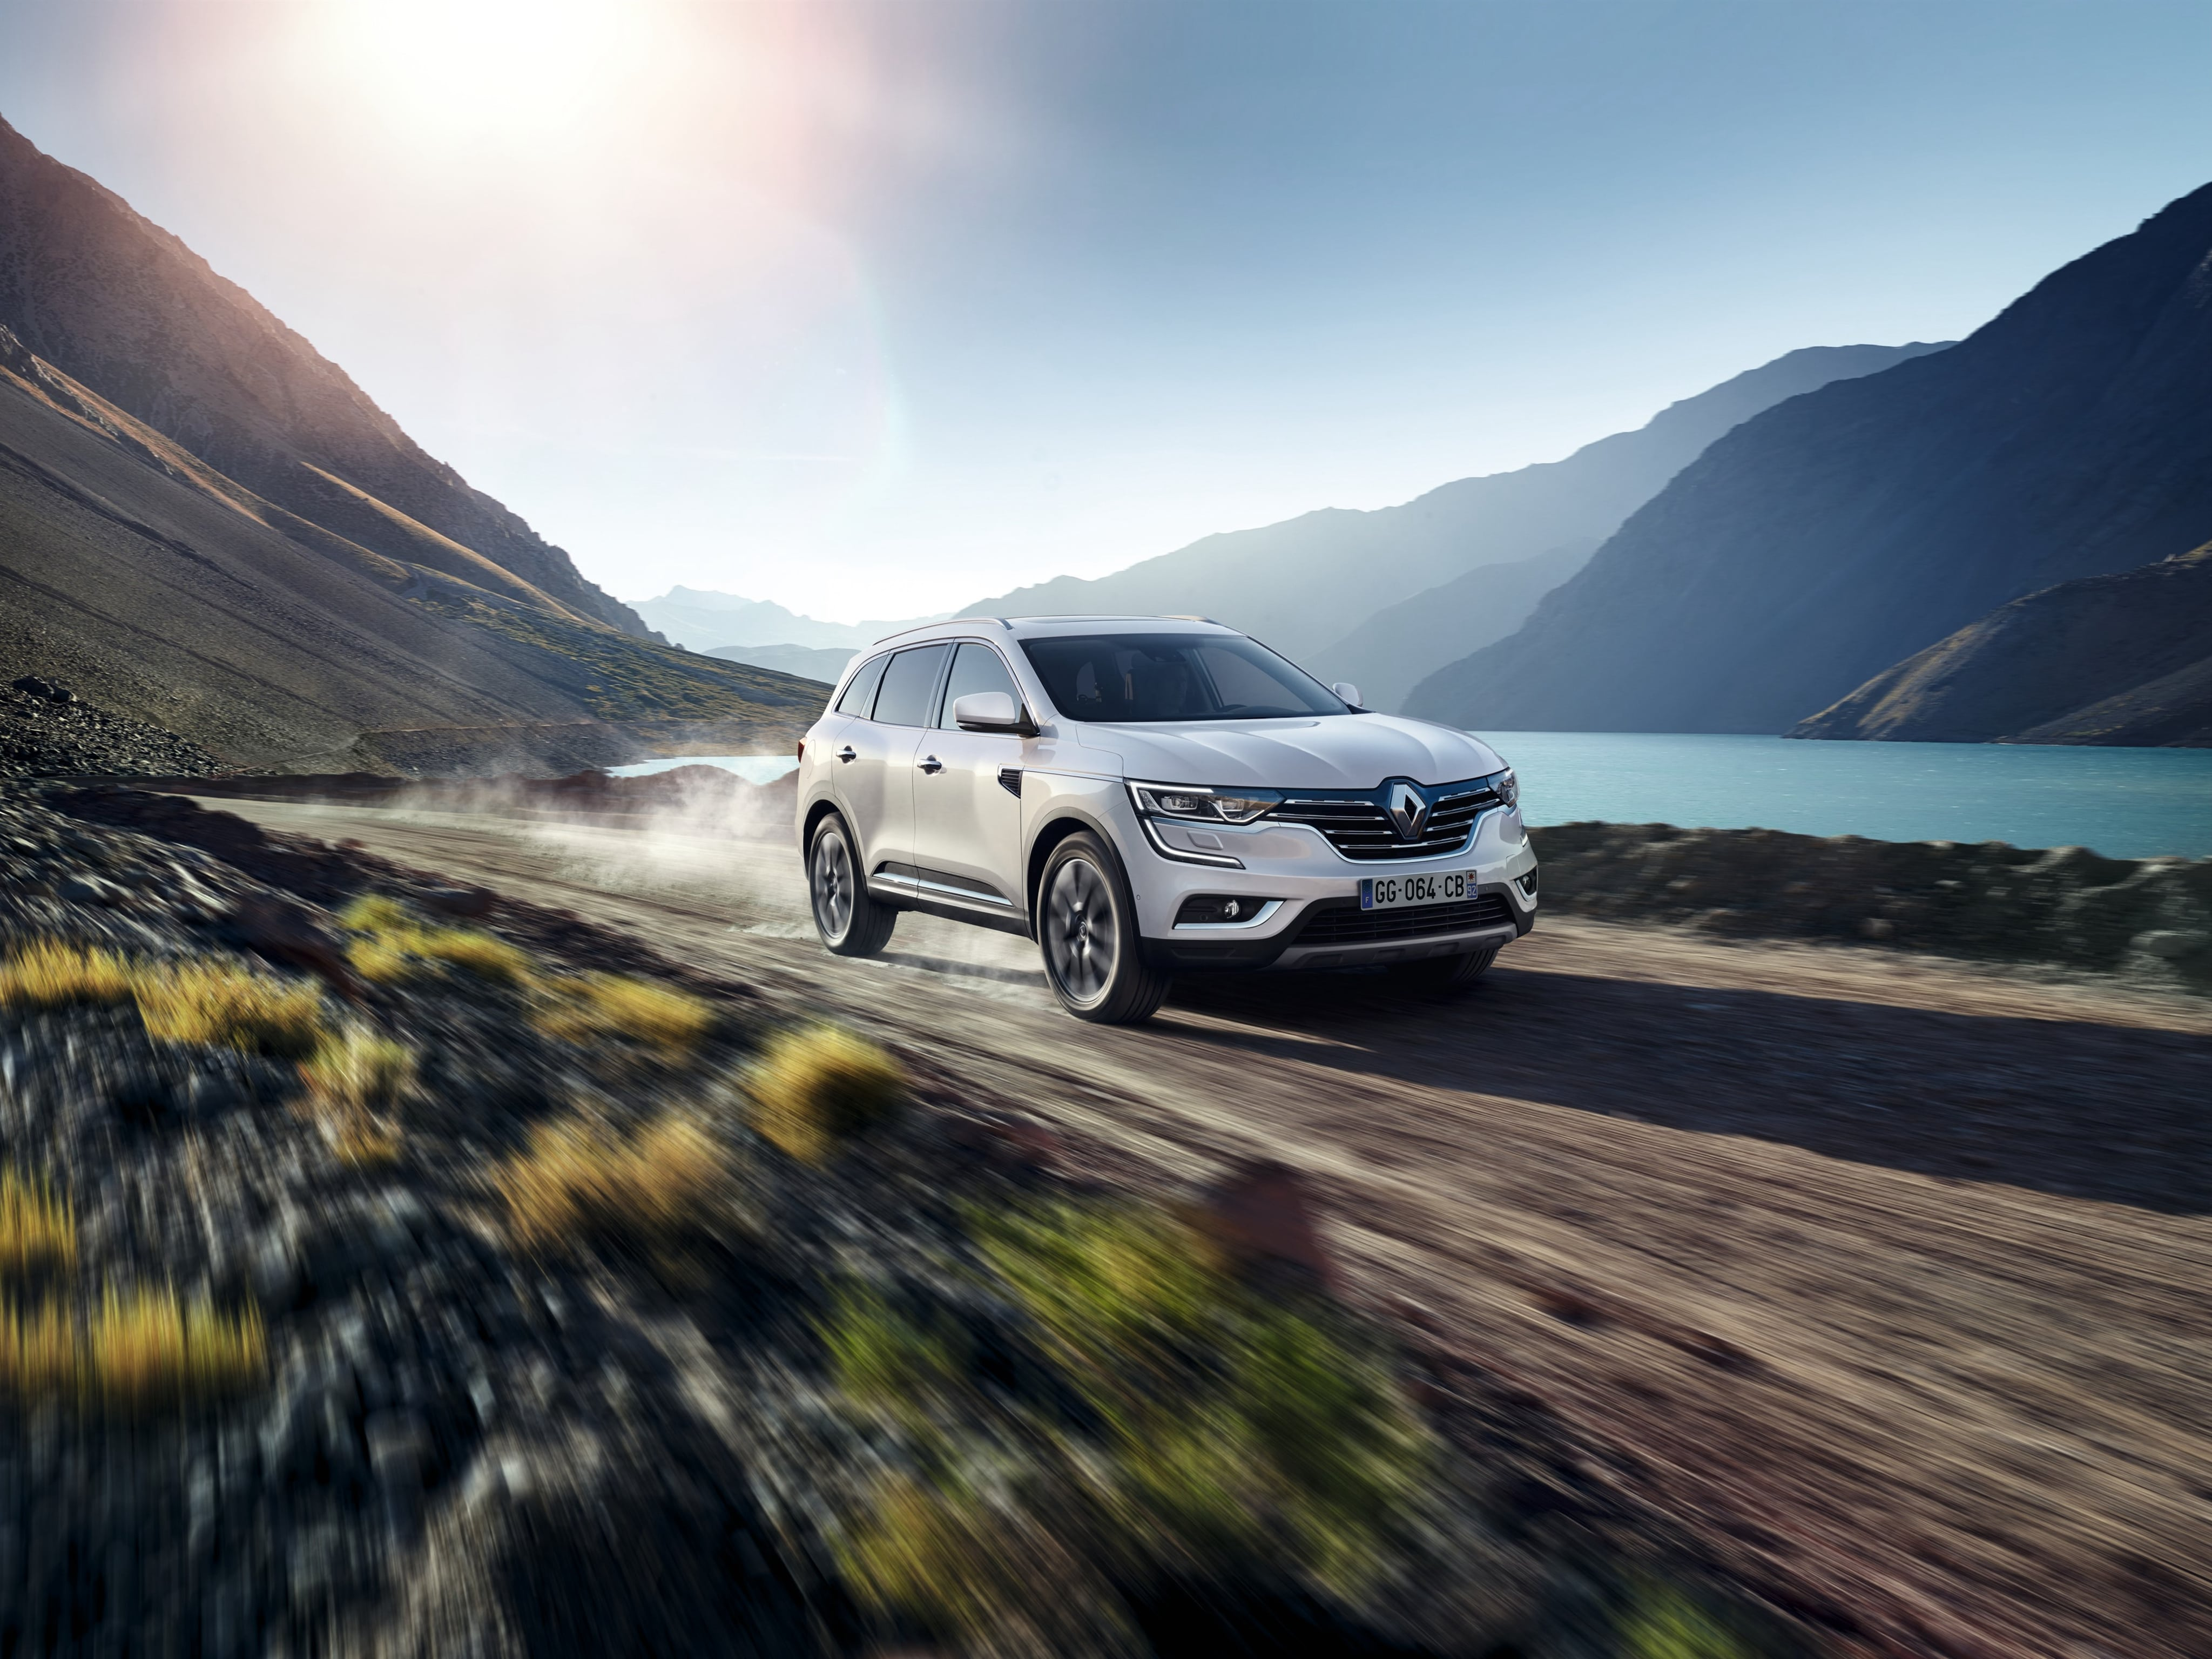 Renault Koleos 2 Desktop wallpaper